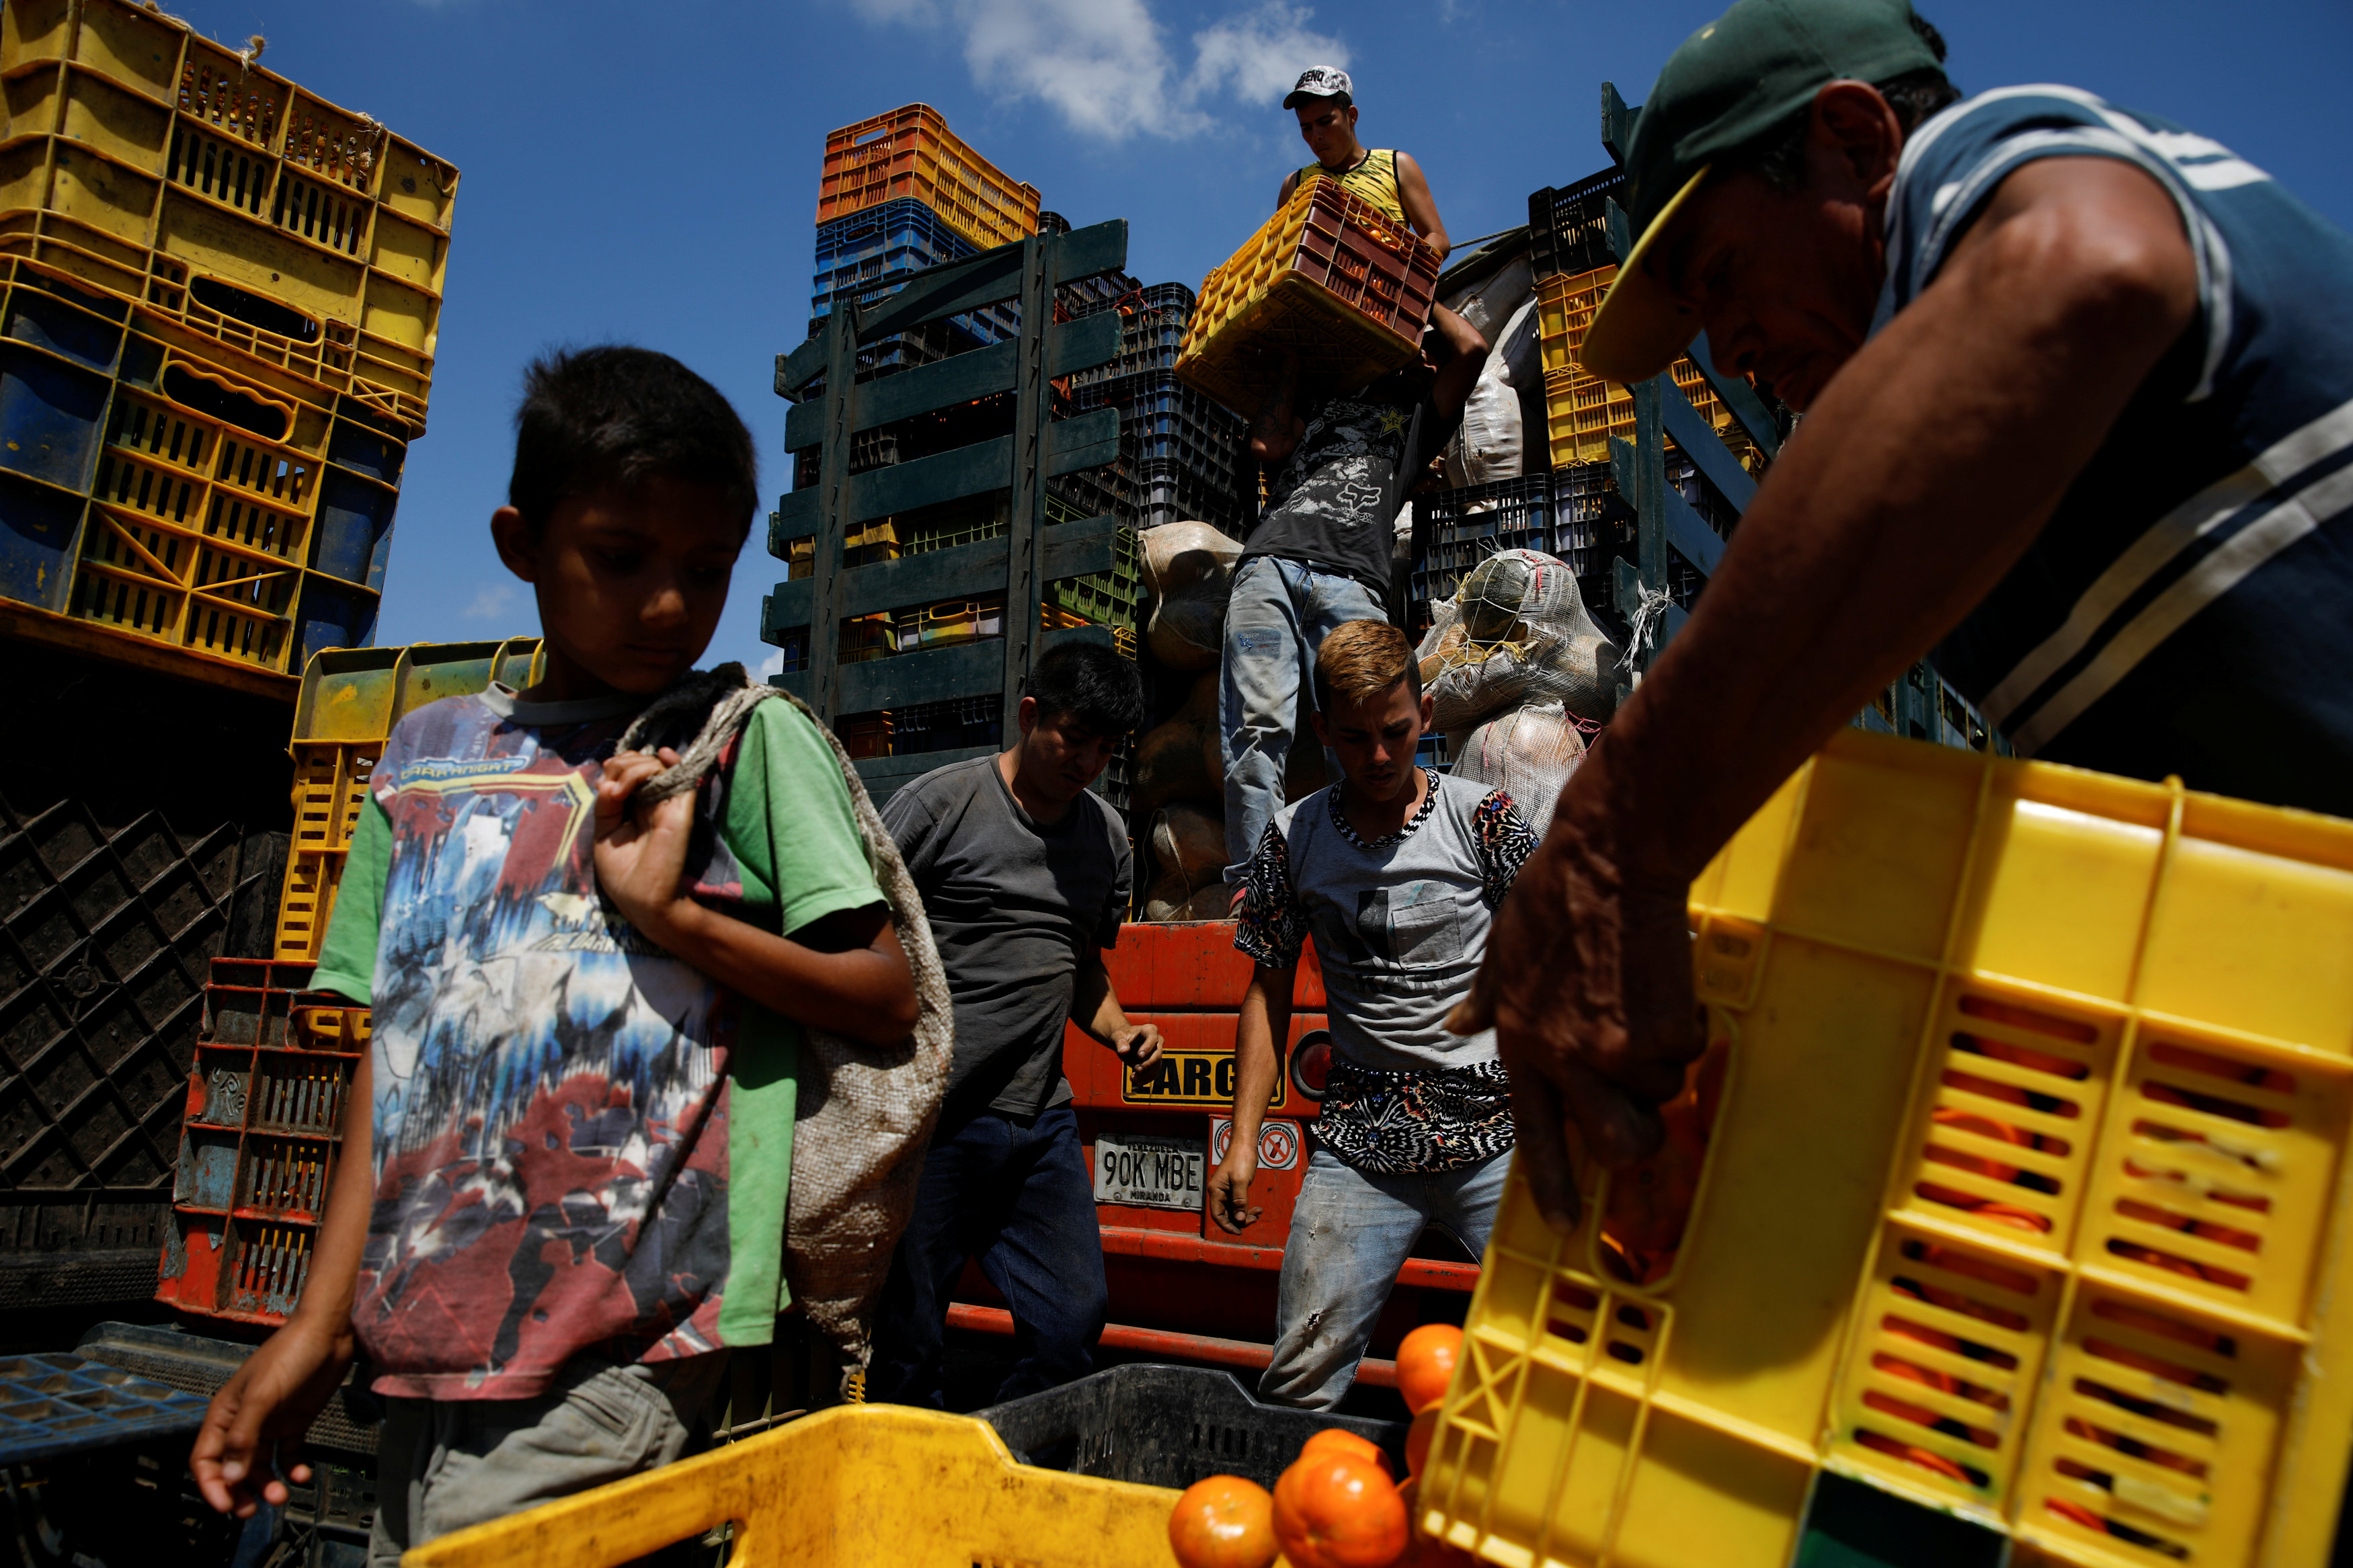 A child looks at a basket filled with mandarins while workers load merchandise into Humberto Aguilar's truck at the wholesale market in Barquisimeto, Venezuela January 30,